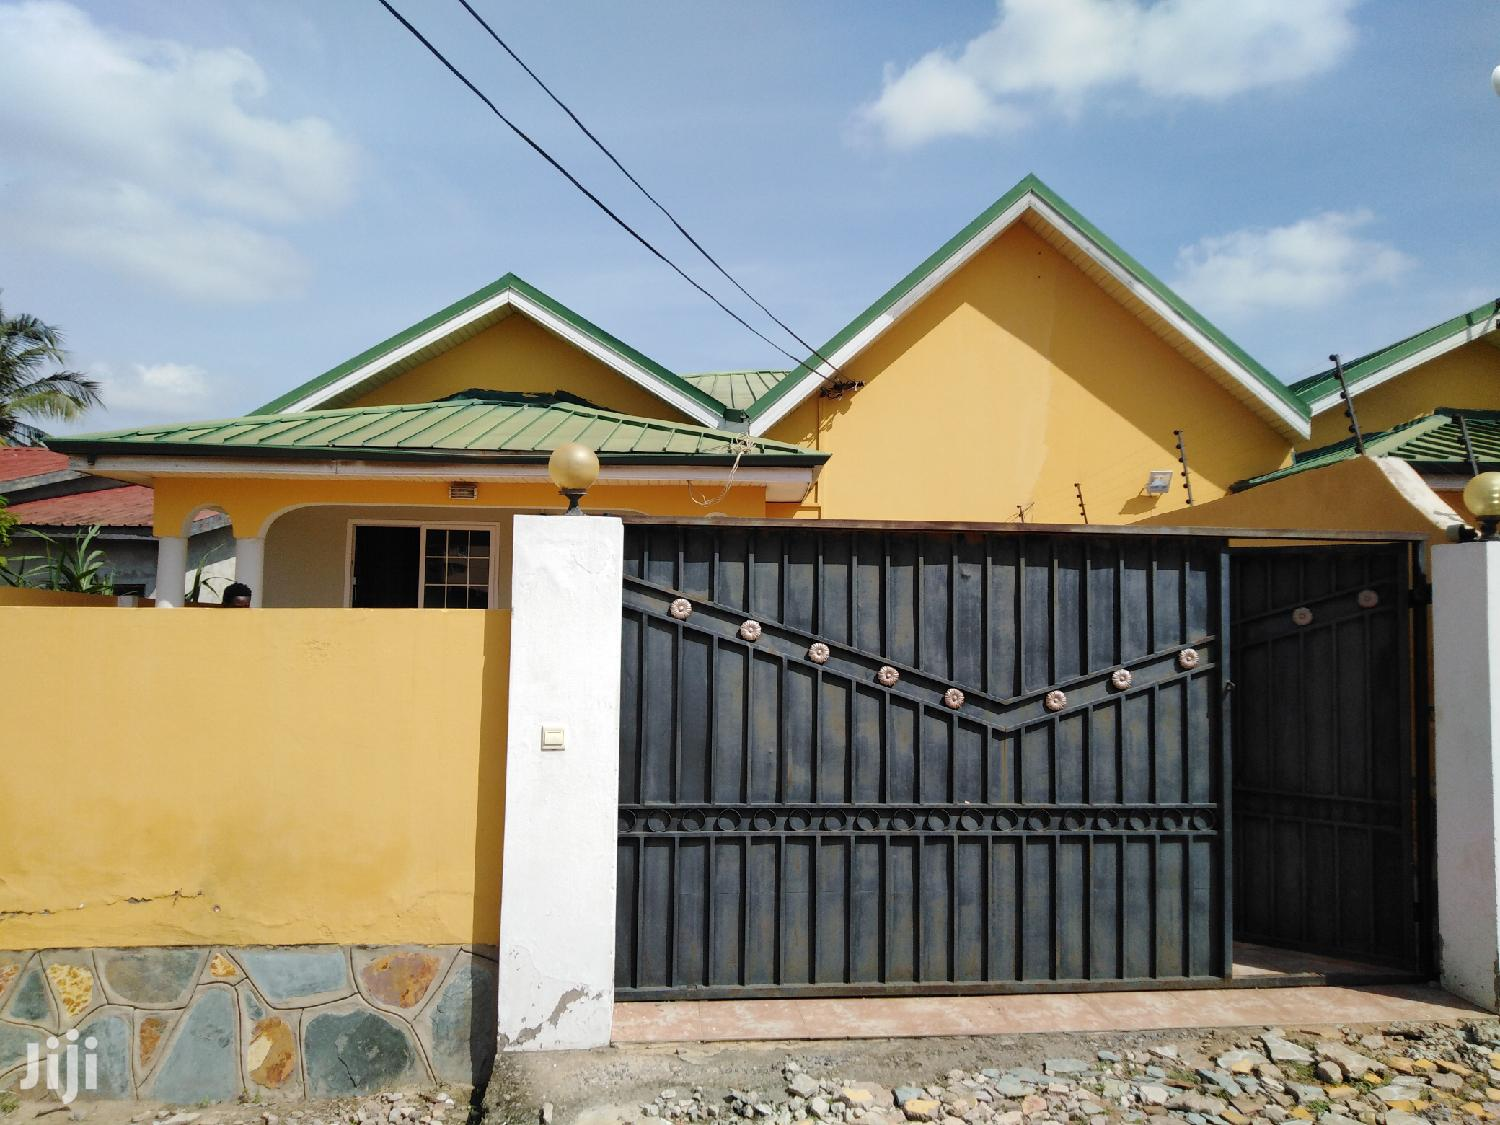 3 Bedroom House For Sale At Spintex Community 16 Is 600,000gh